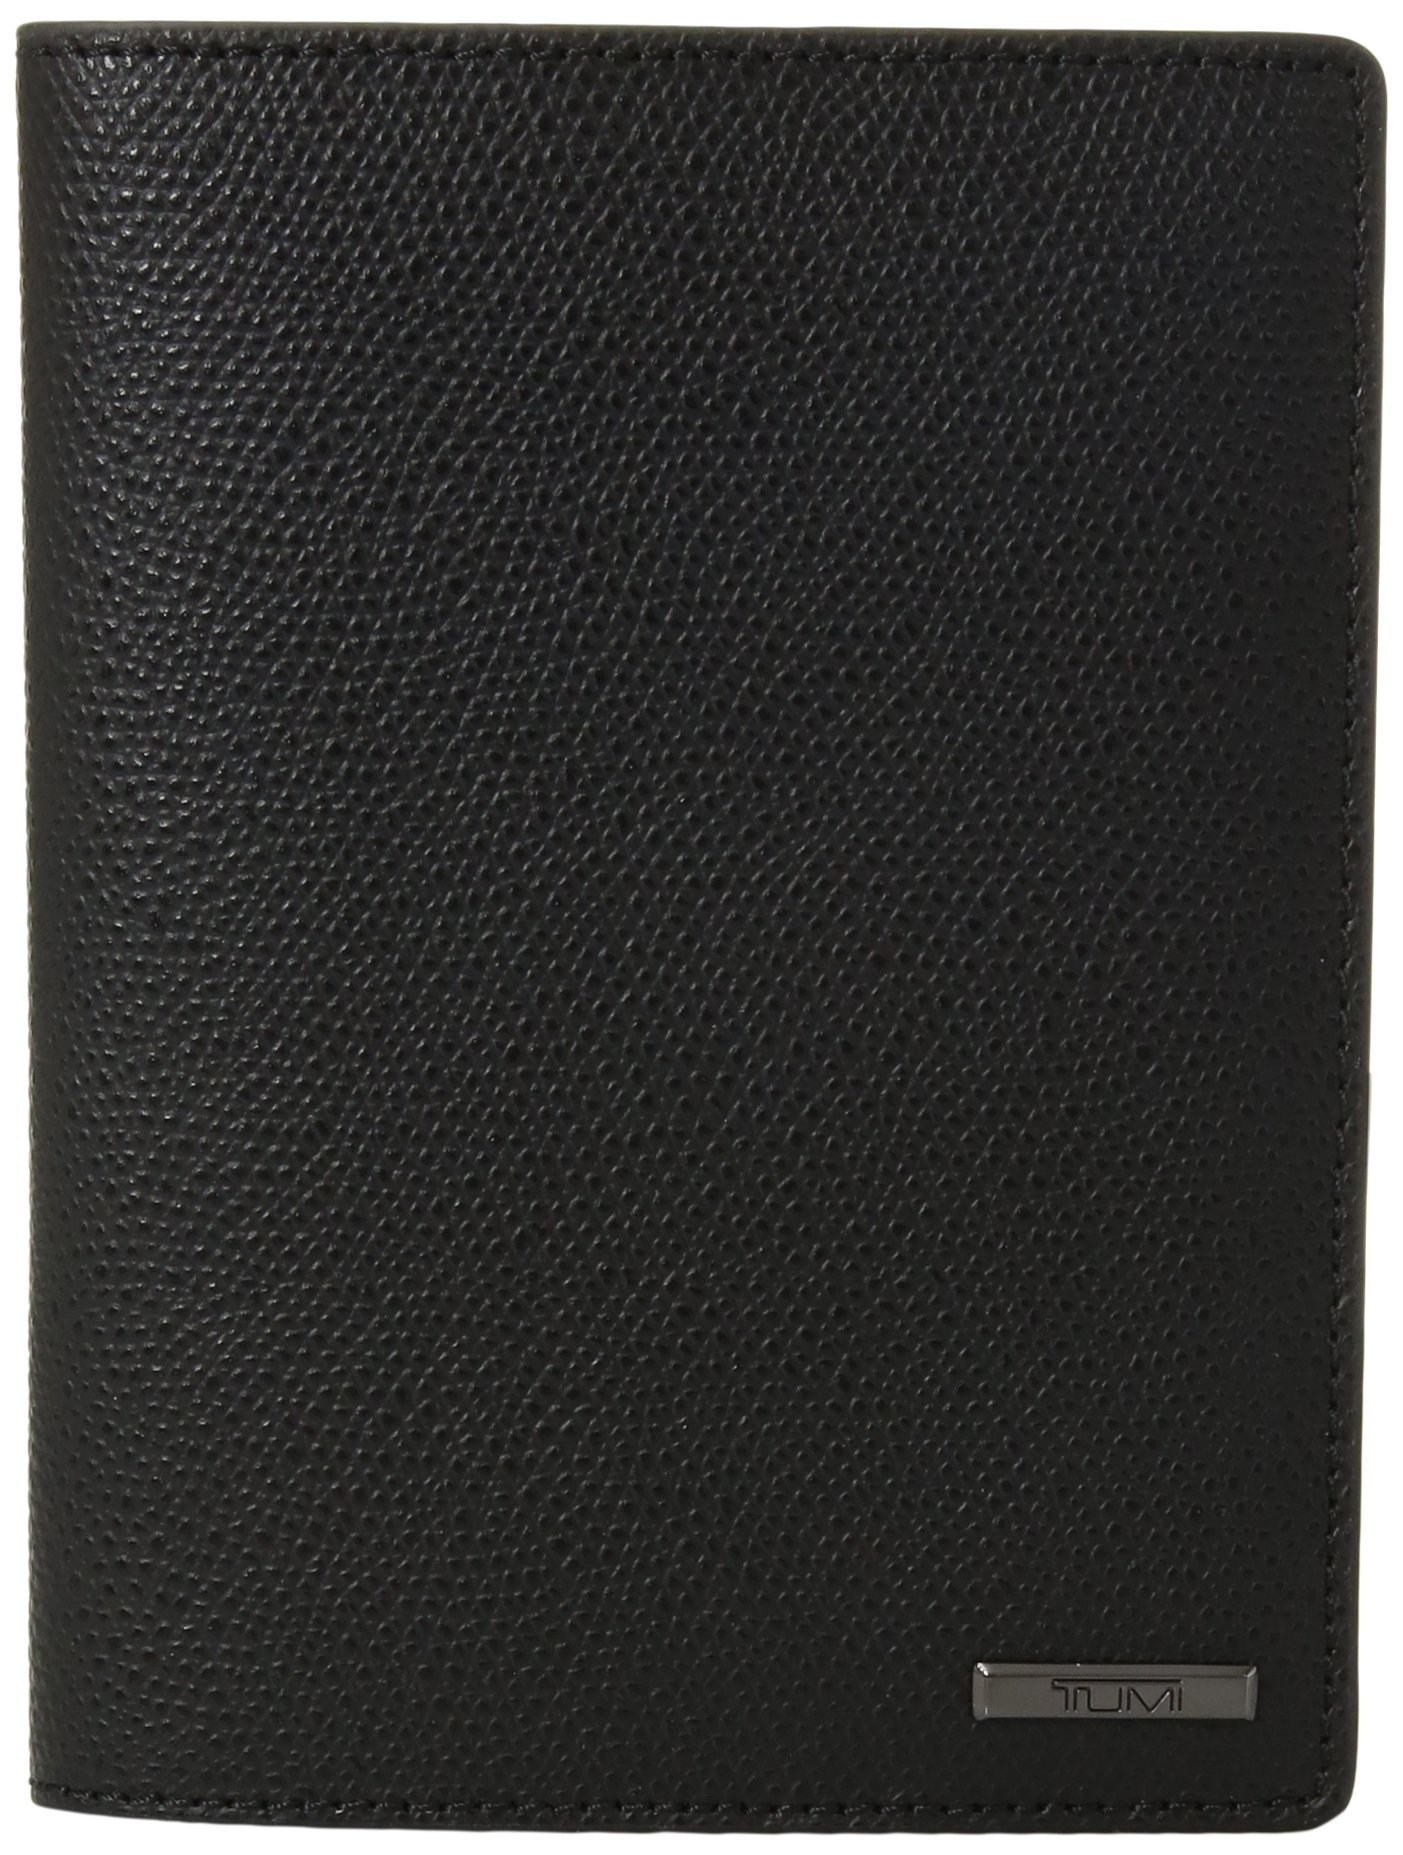 TUMI Unisex-Adult's Province Passport Cover, black One Size